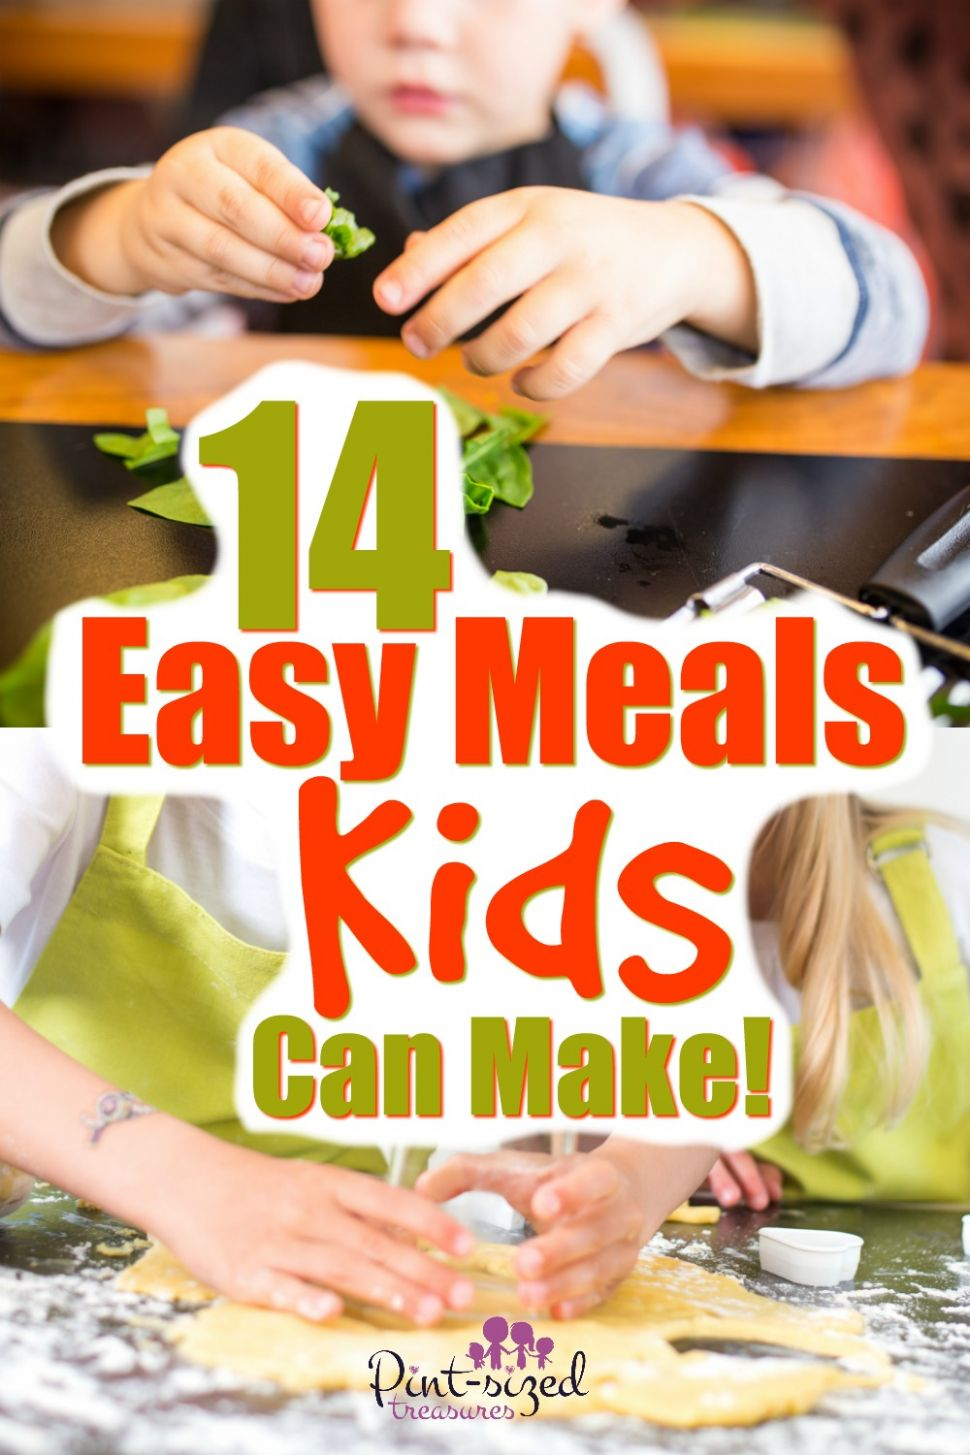 11 Easy Meals Kids Can Make - Easy Recipes For Kids To Make By Themselves